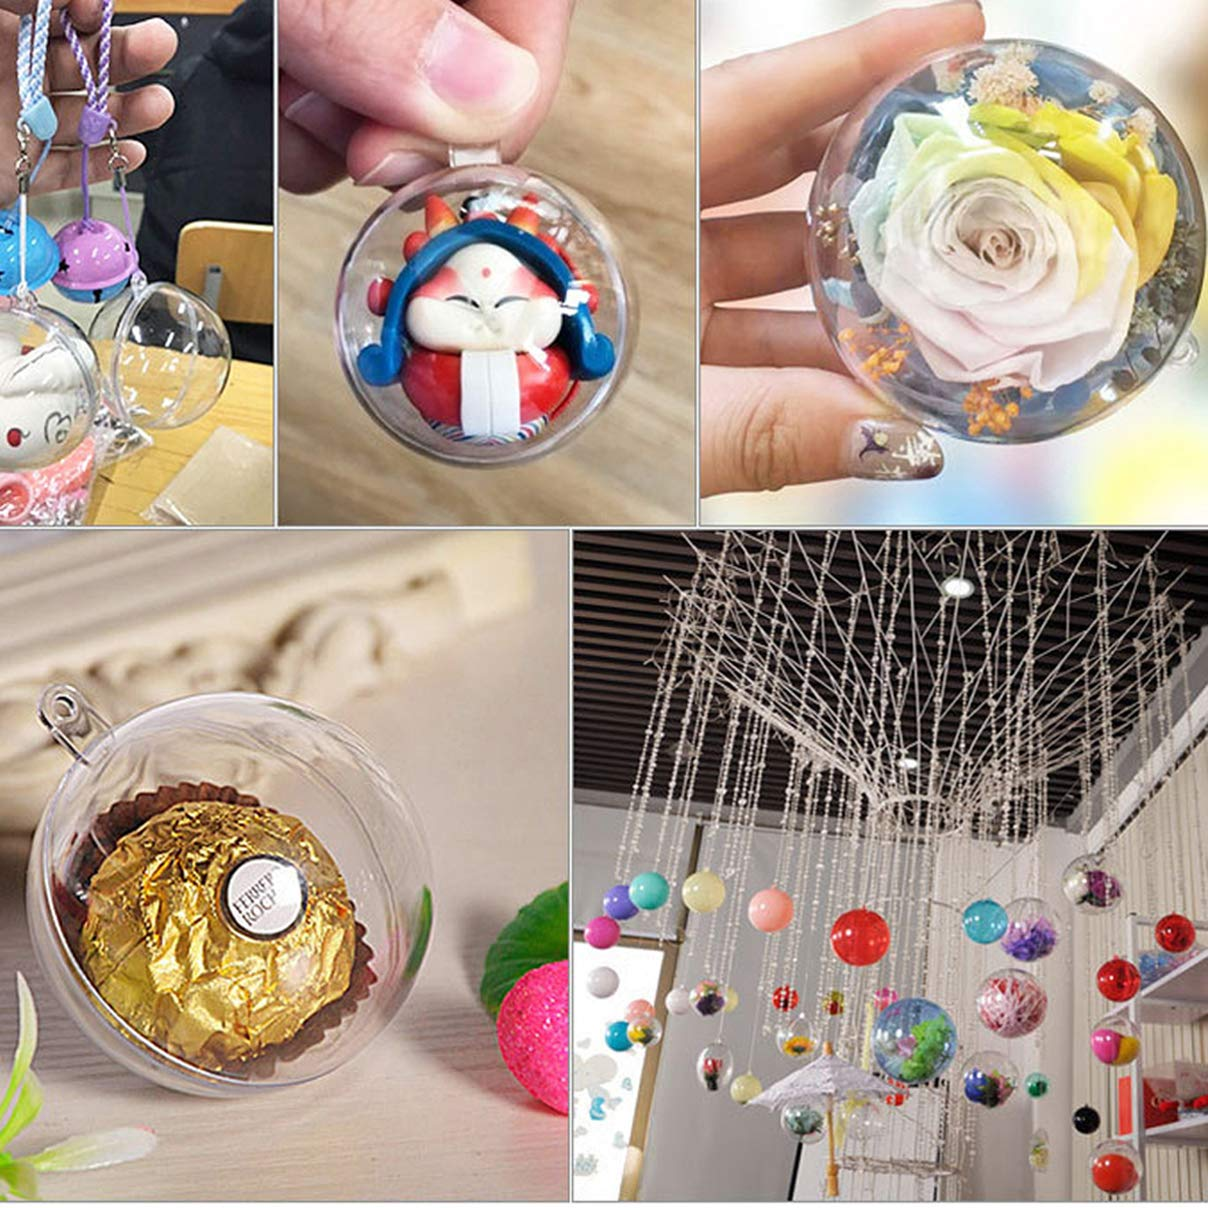 Hahago Clear Plastic Acrylic Fillable Transparent Ball Sphere Bauble Ornament for Wedding Party Christmas Home Decor 40mm,set of 19pcs